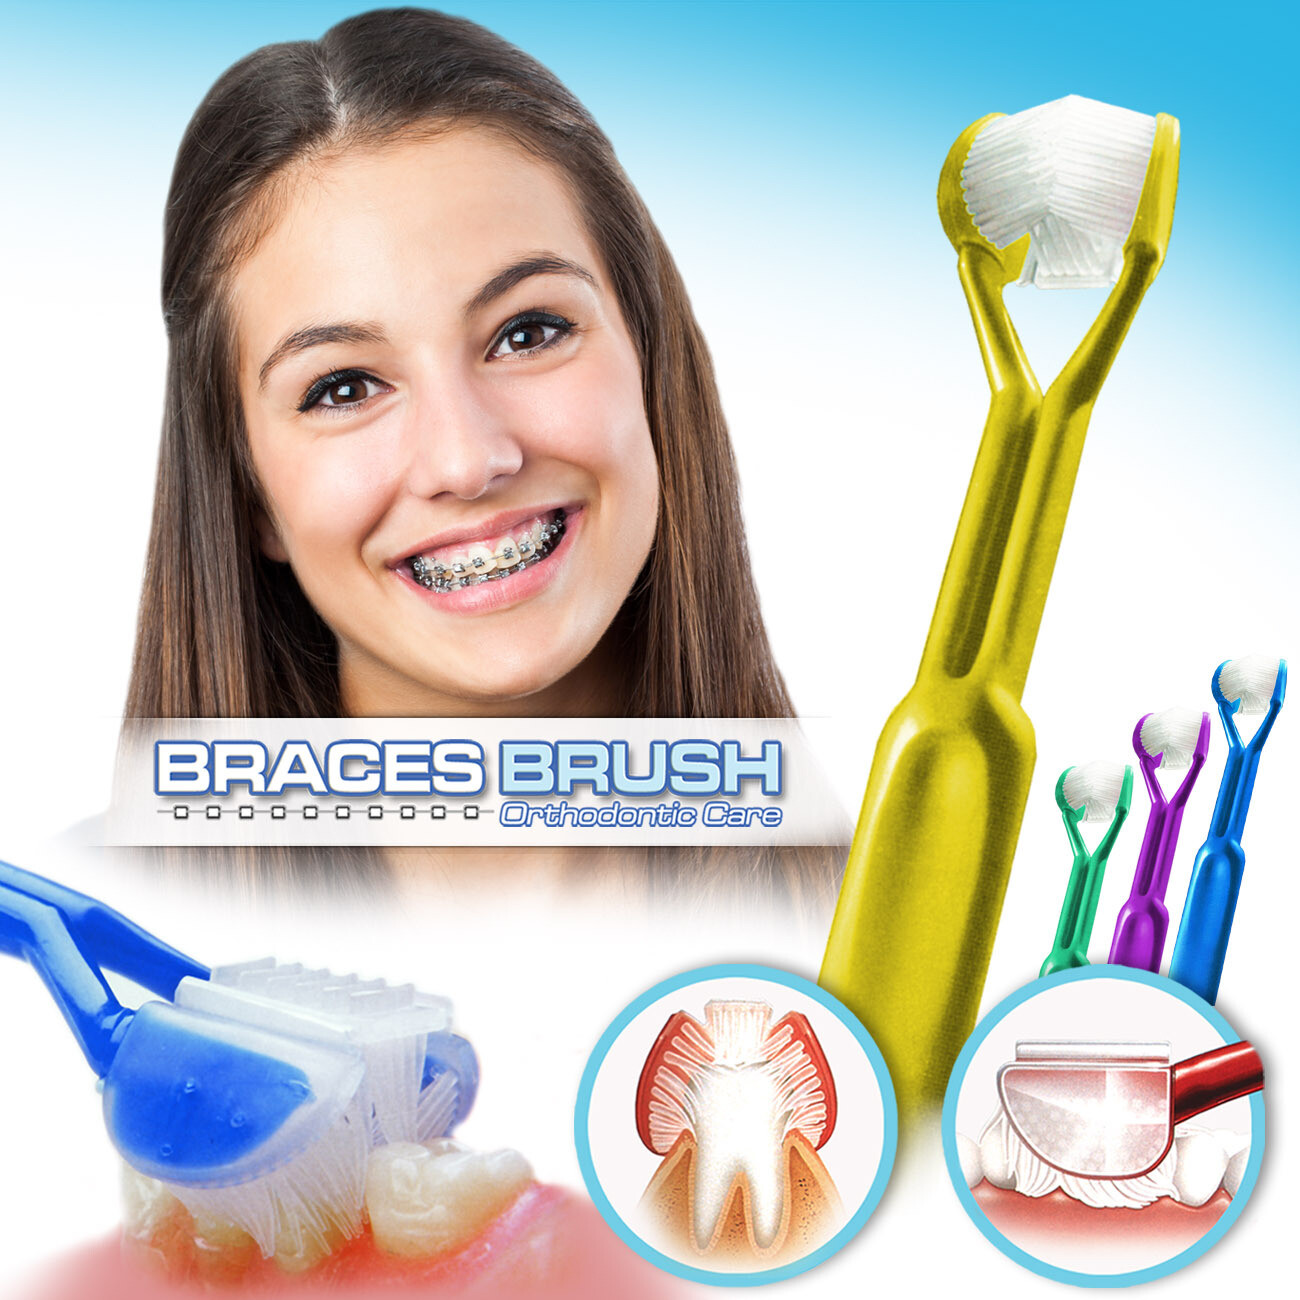 4-PK: DenTrust BRACES BRUSH :: 3-Sided Toothbrush :: Clinically Proven to Remove More Plaque Around Bracket's & Orthodontics :: Fast, Easy & More Complete Dental Care